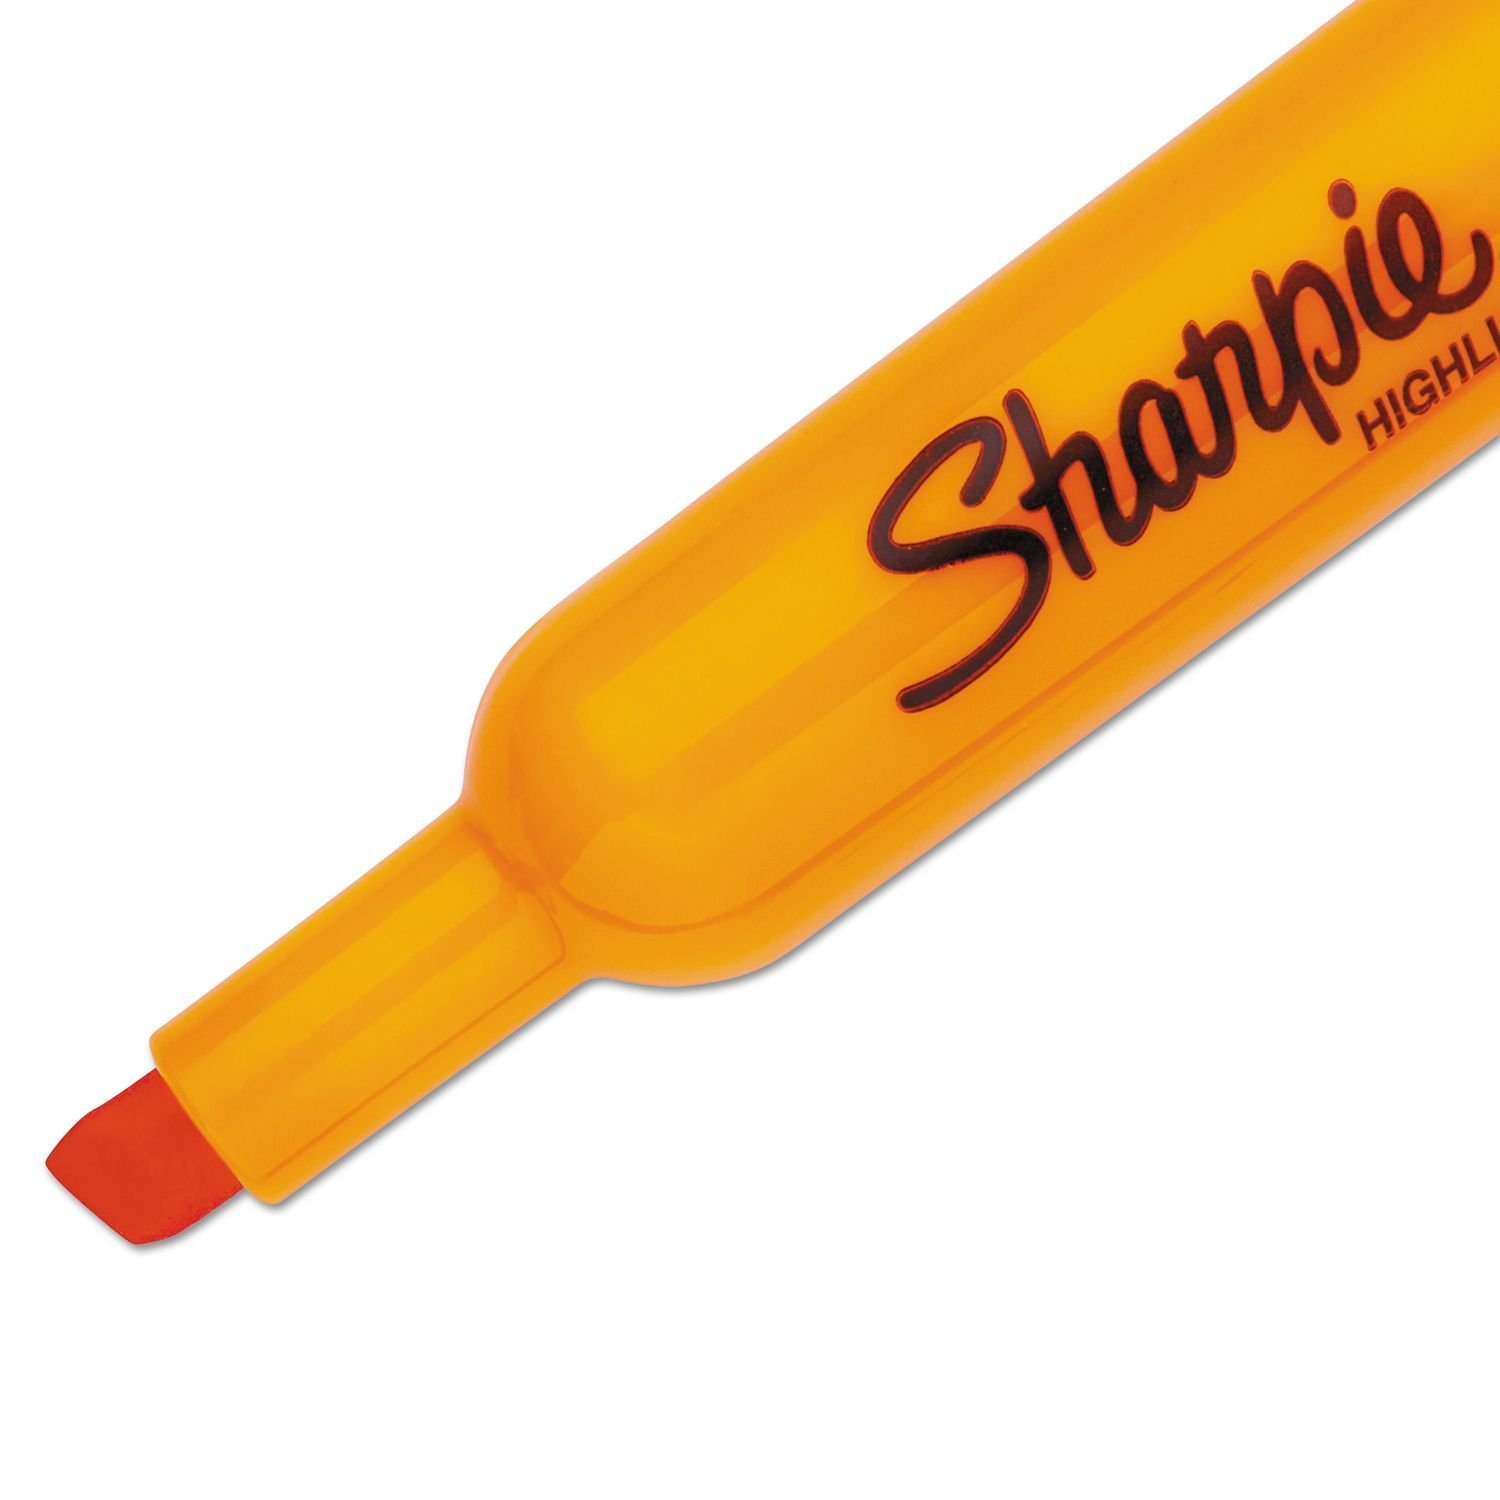 Sharpie Accent Tank Highlighters, Chisel Tip, Fluorescent Orange, 36-Count by SHARPIE